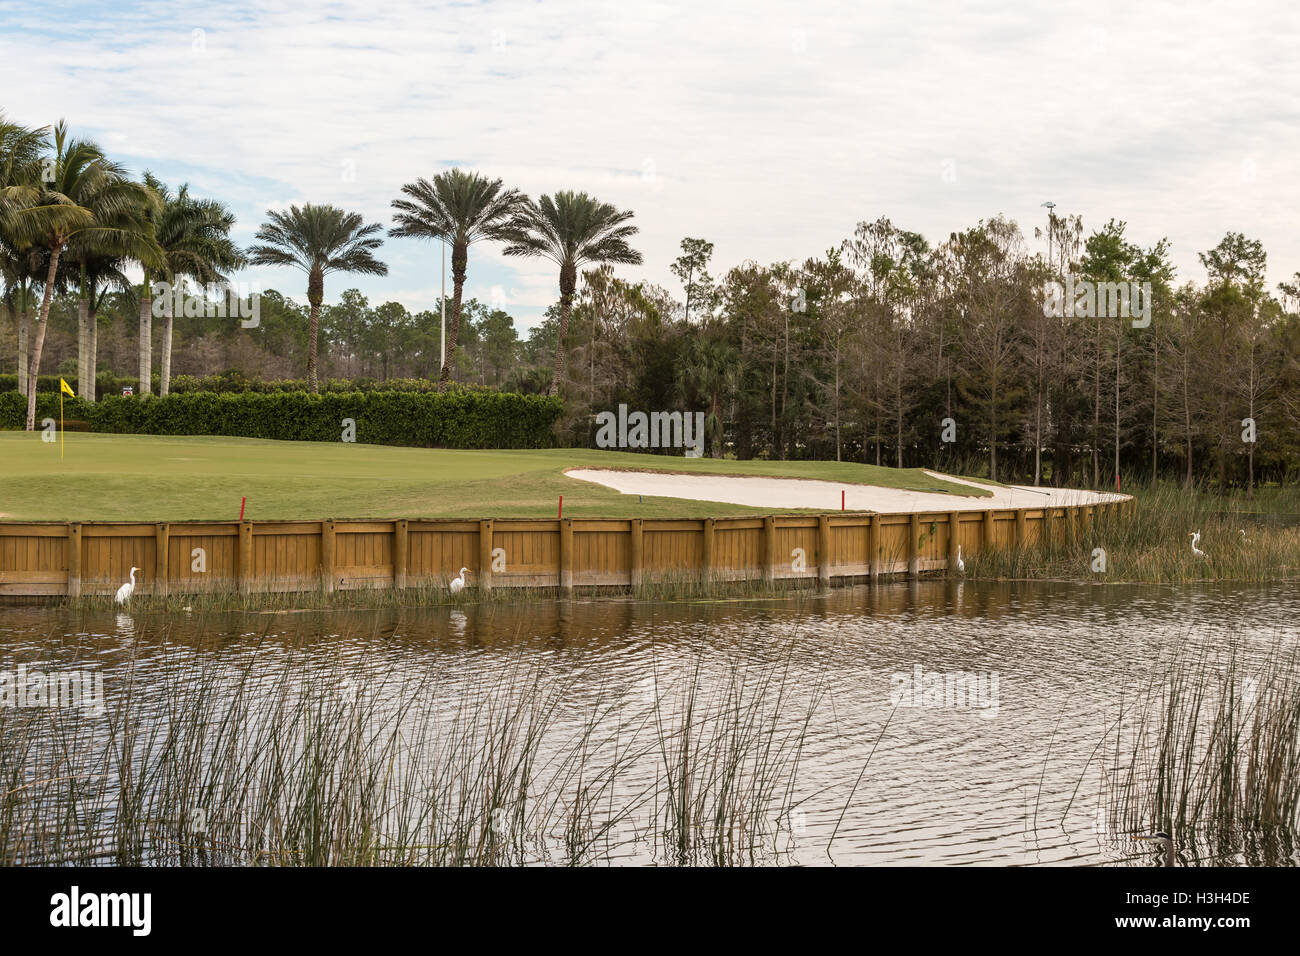 Florida Golf Course Stock Photos & Florida Golf Course Stock Images ...